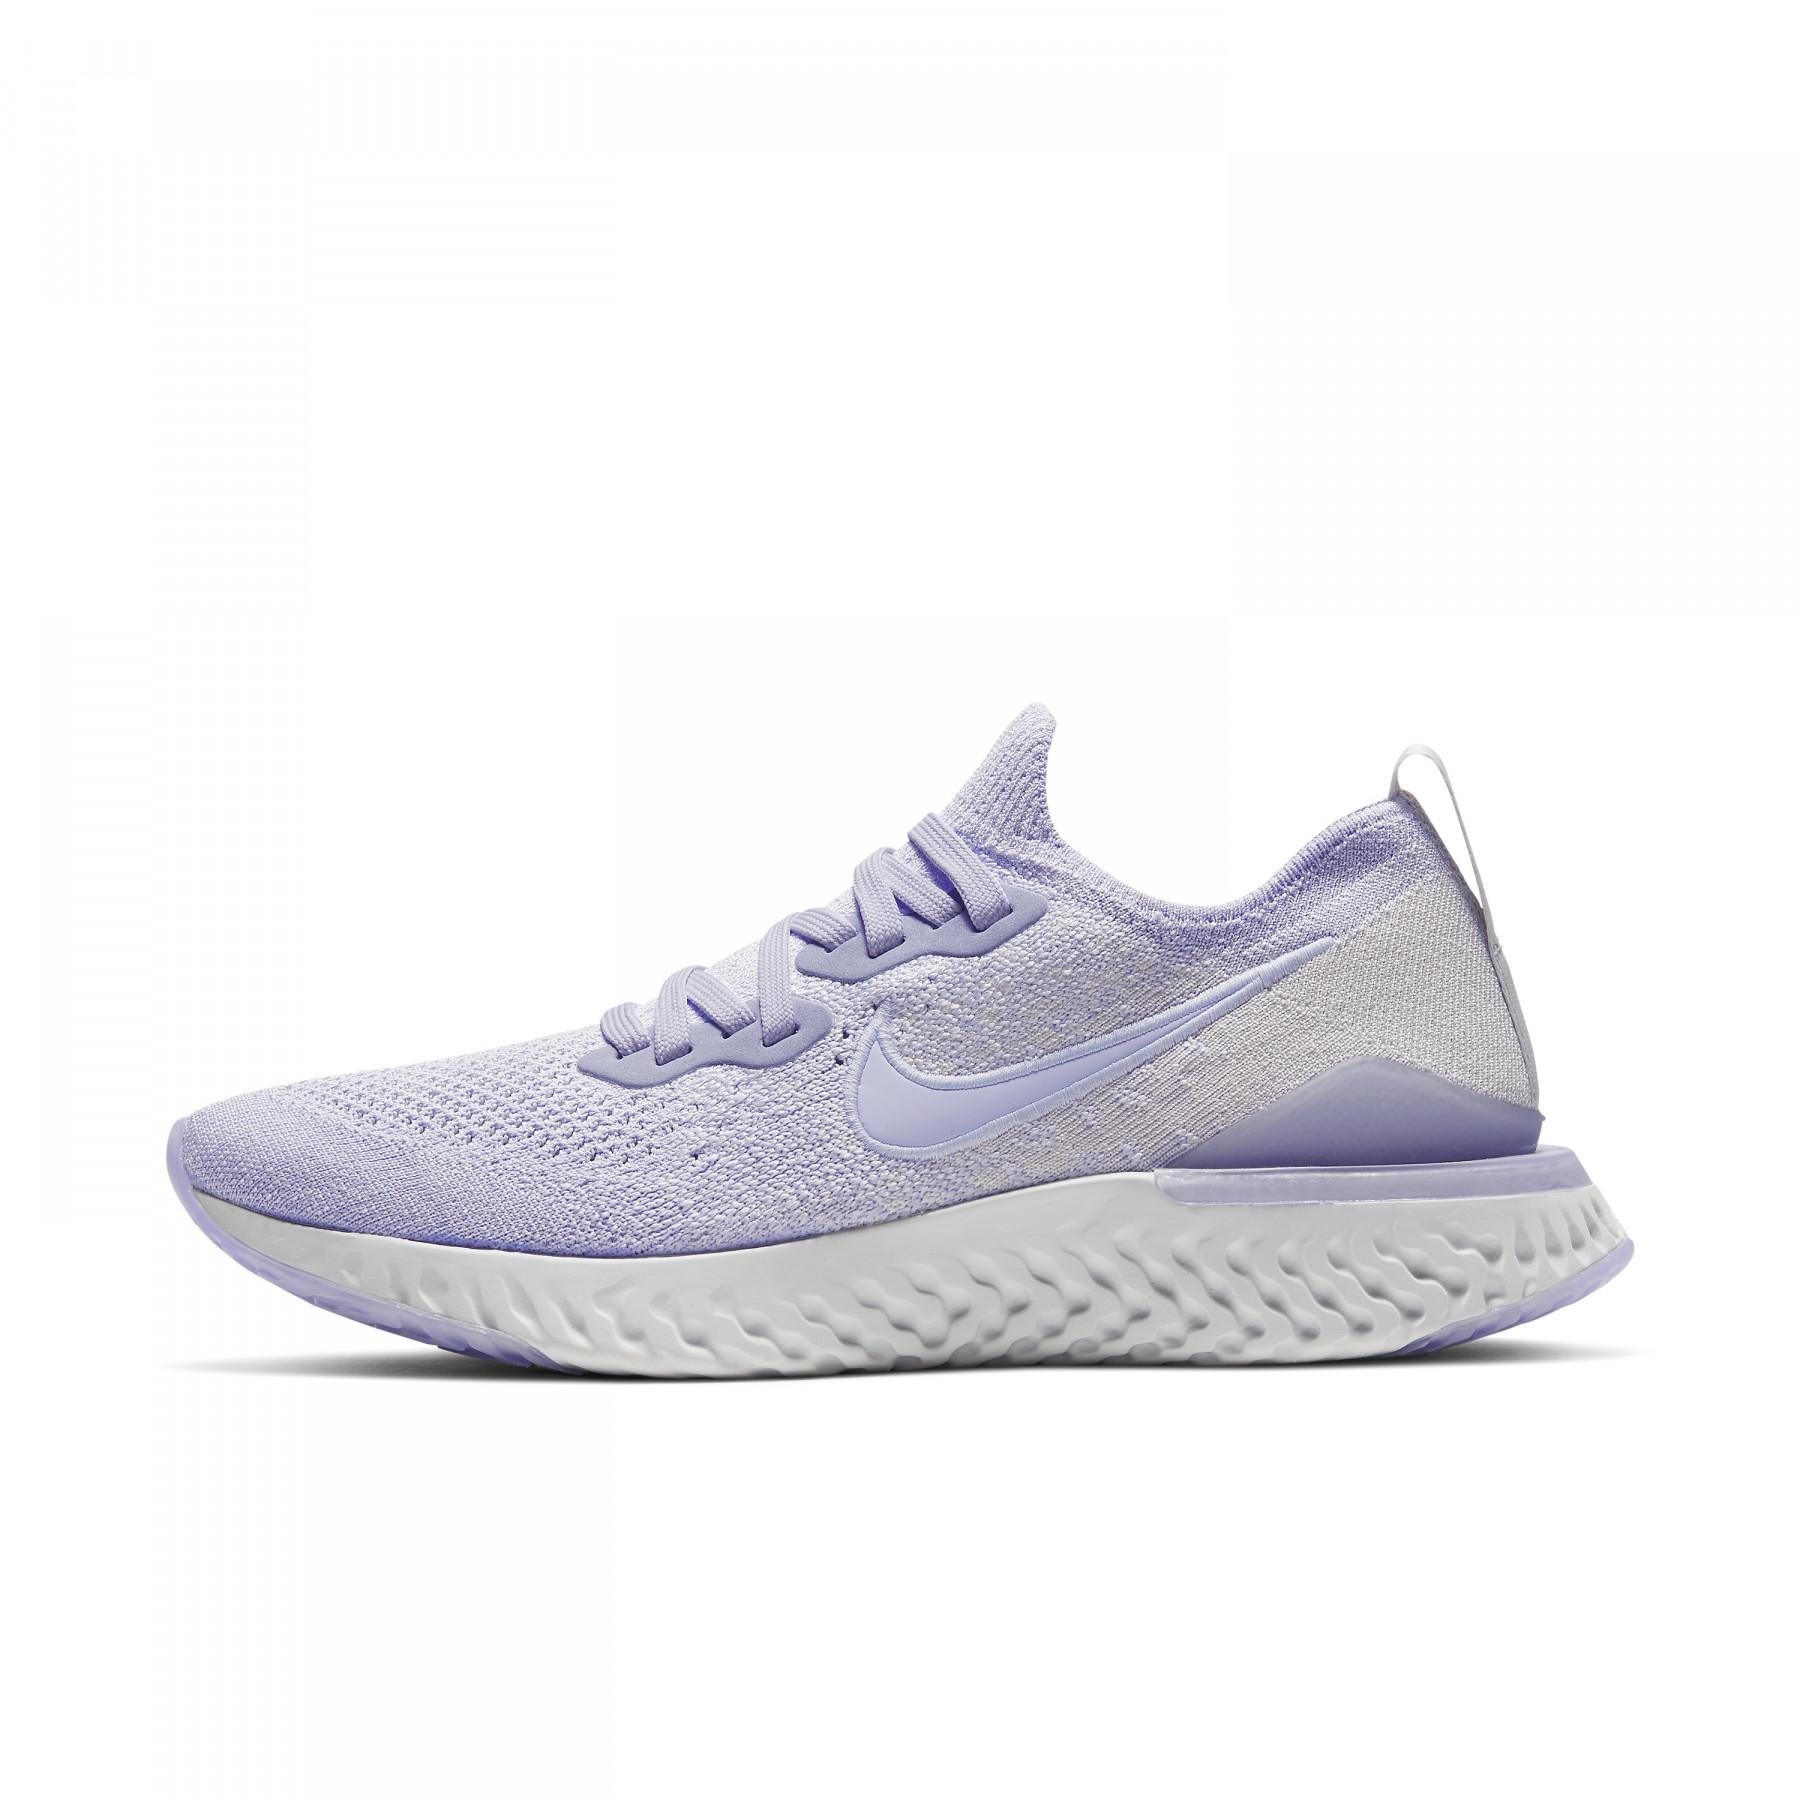 Shoes woman Nike Epic React Flyknit 2